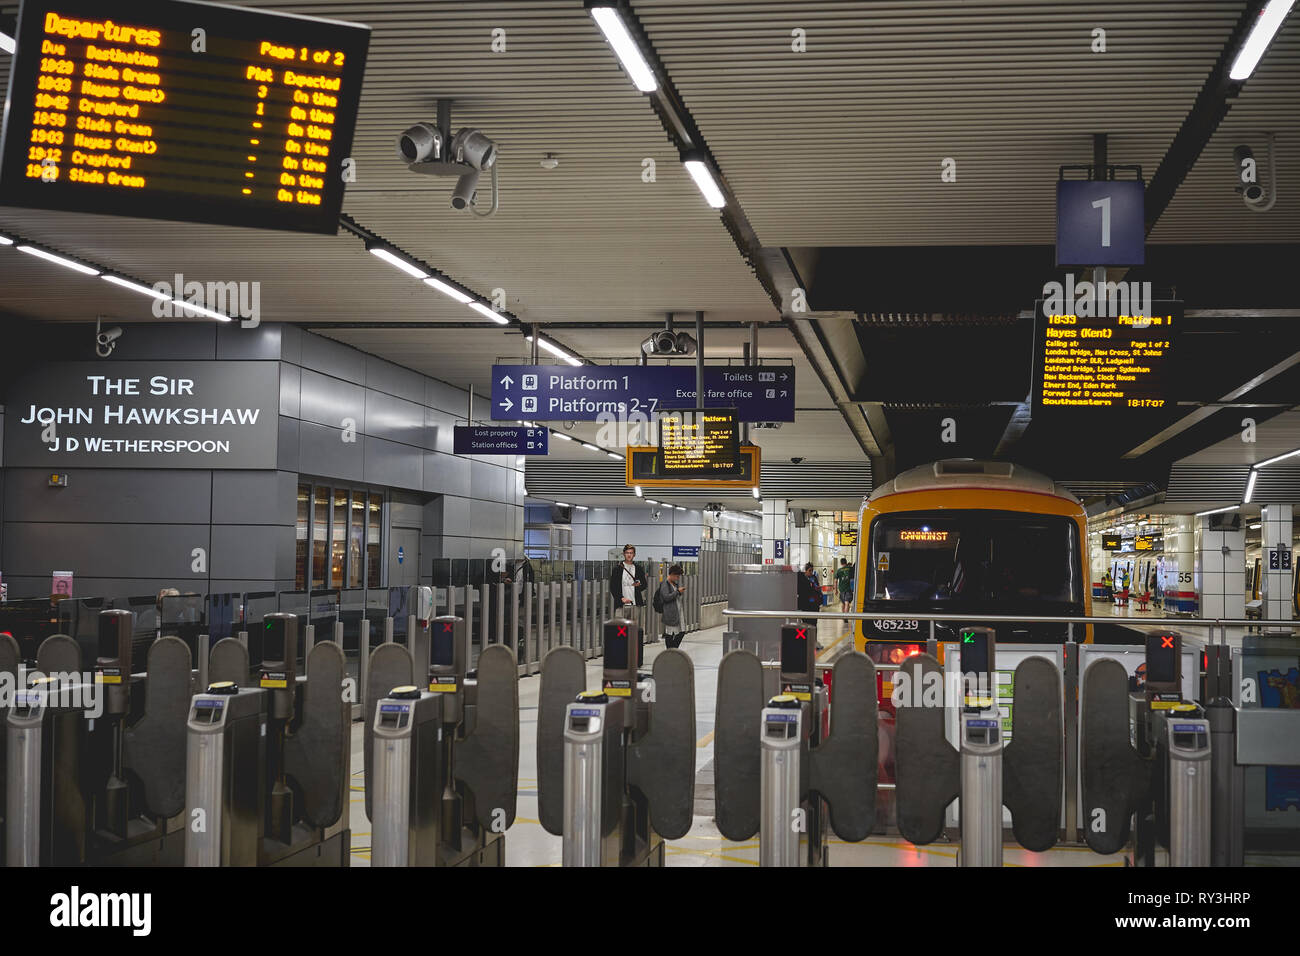 London, UK - October, 2018. A Southeastern train on a platform in Cannon Street station. - Stock Image